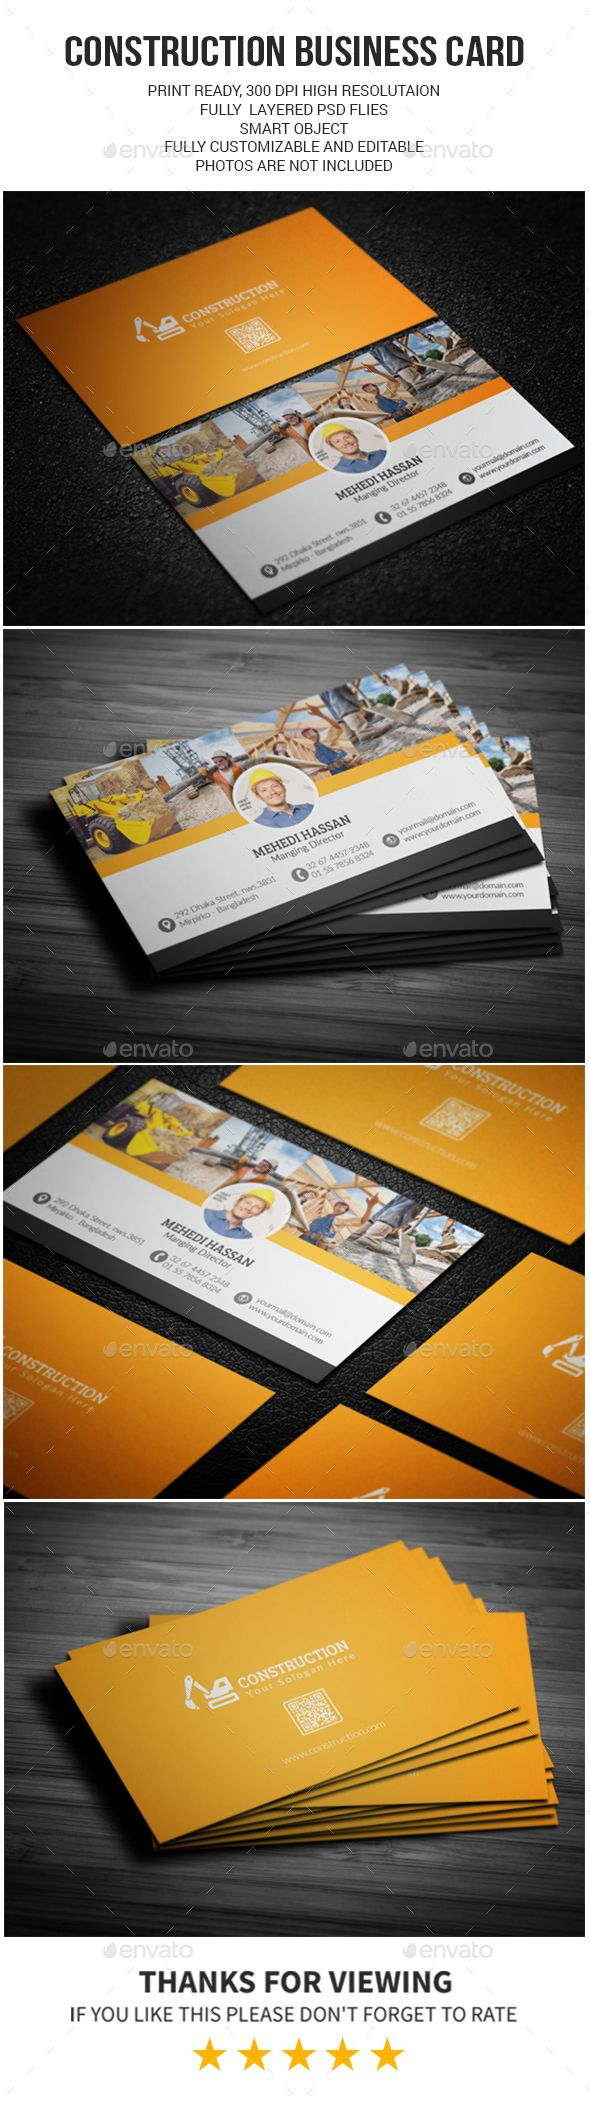 Construction Business Card | Pinterest | Construction business cards ...